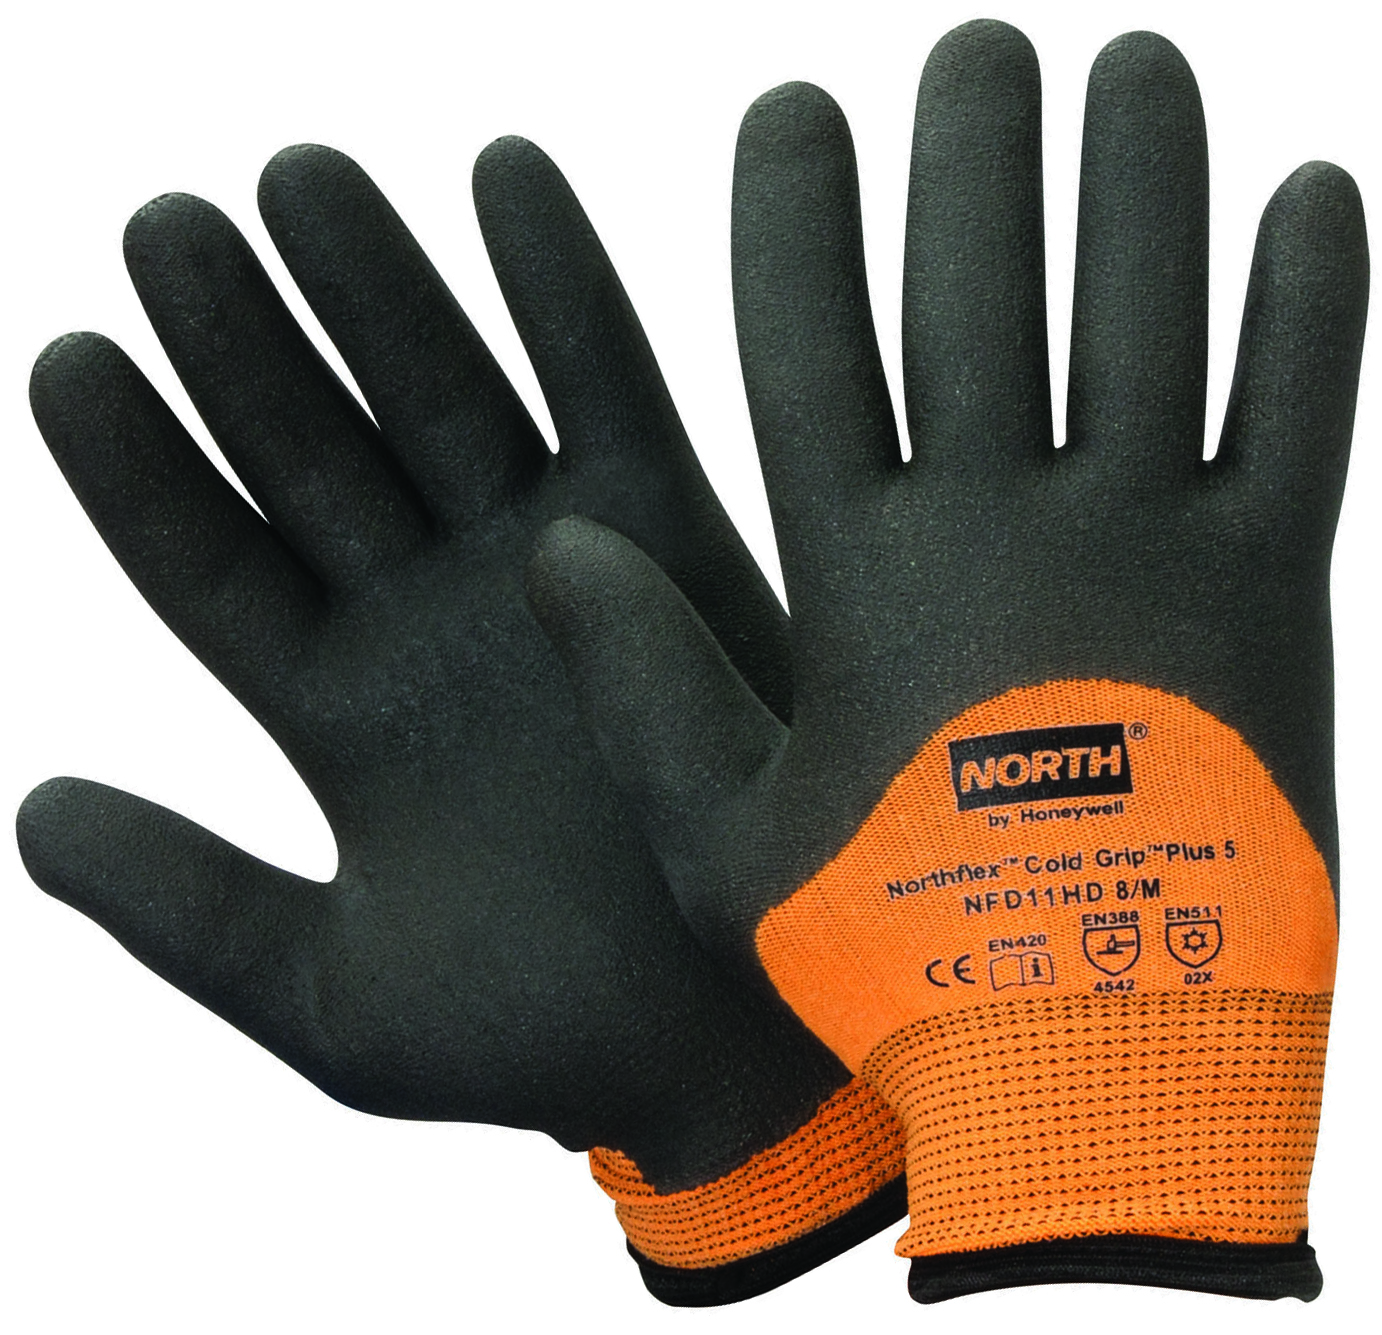 NFD11HD/9L - NorthFlex® Cold Grip Plus™ 5 Thermal Protection Gloves-NorthFlex® Cold Grip Plus 5 Thermal Protection Gloves-Orange & Black----UOM: 12/PK